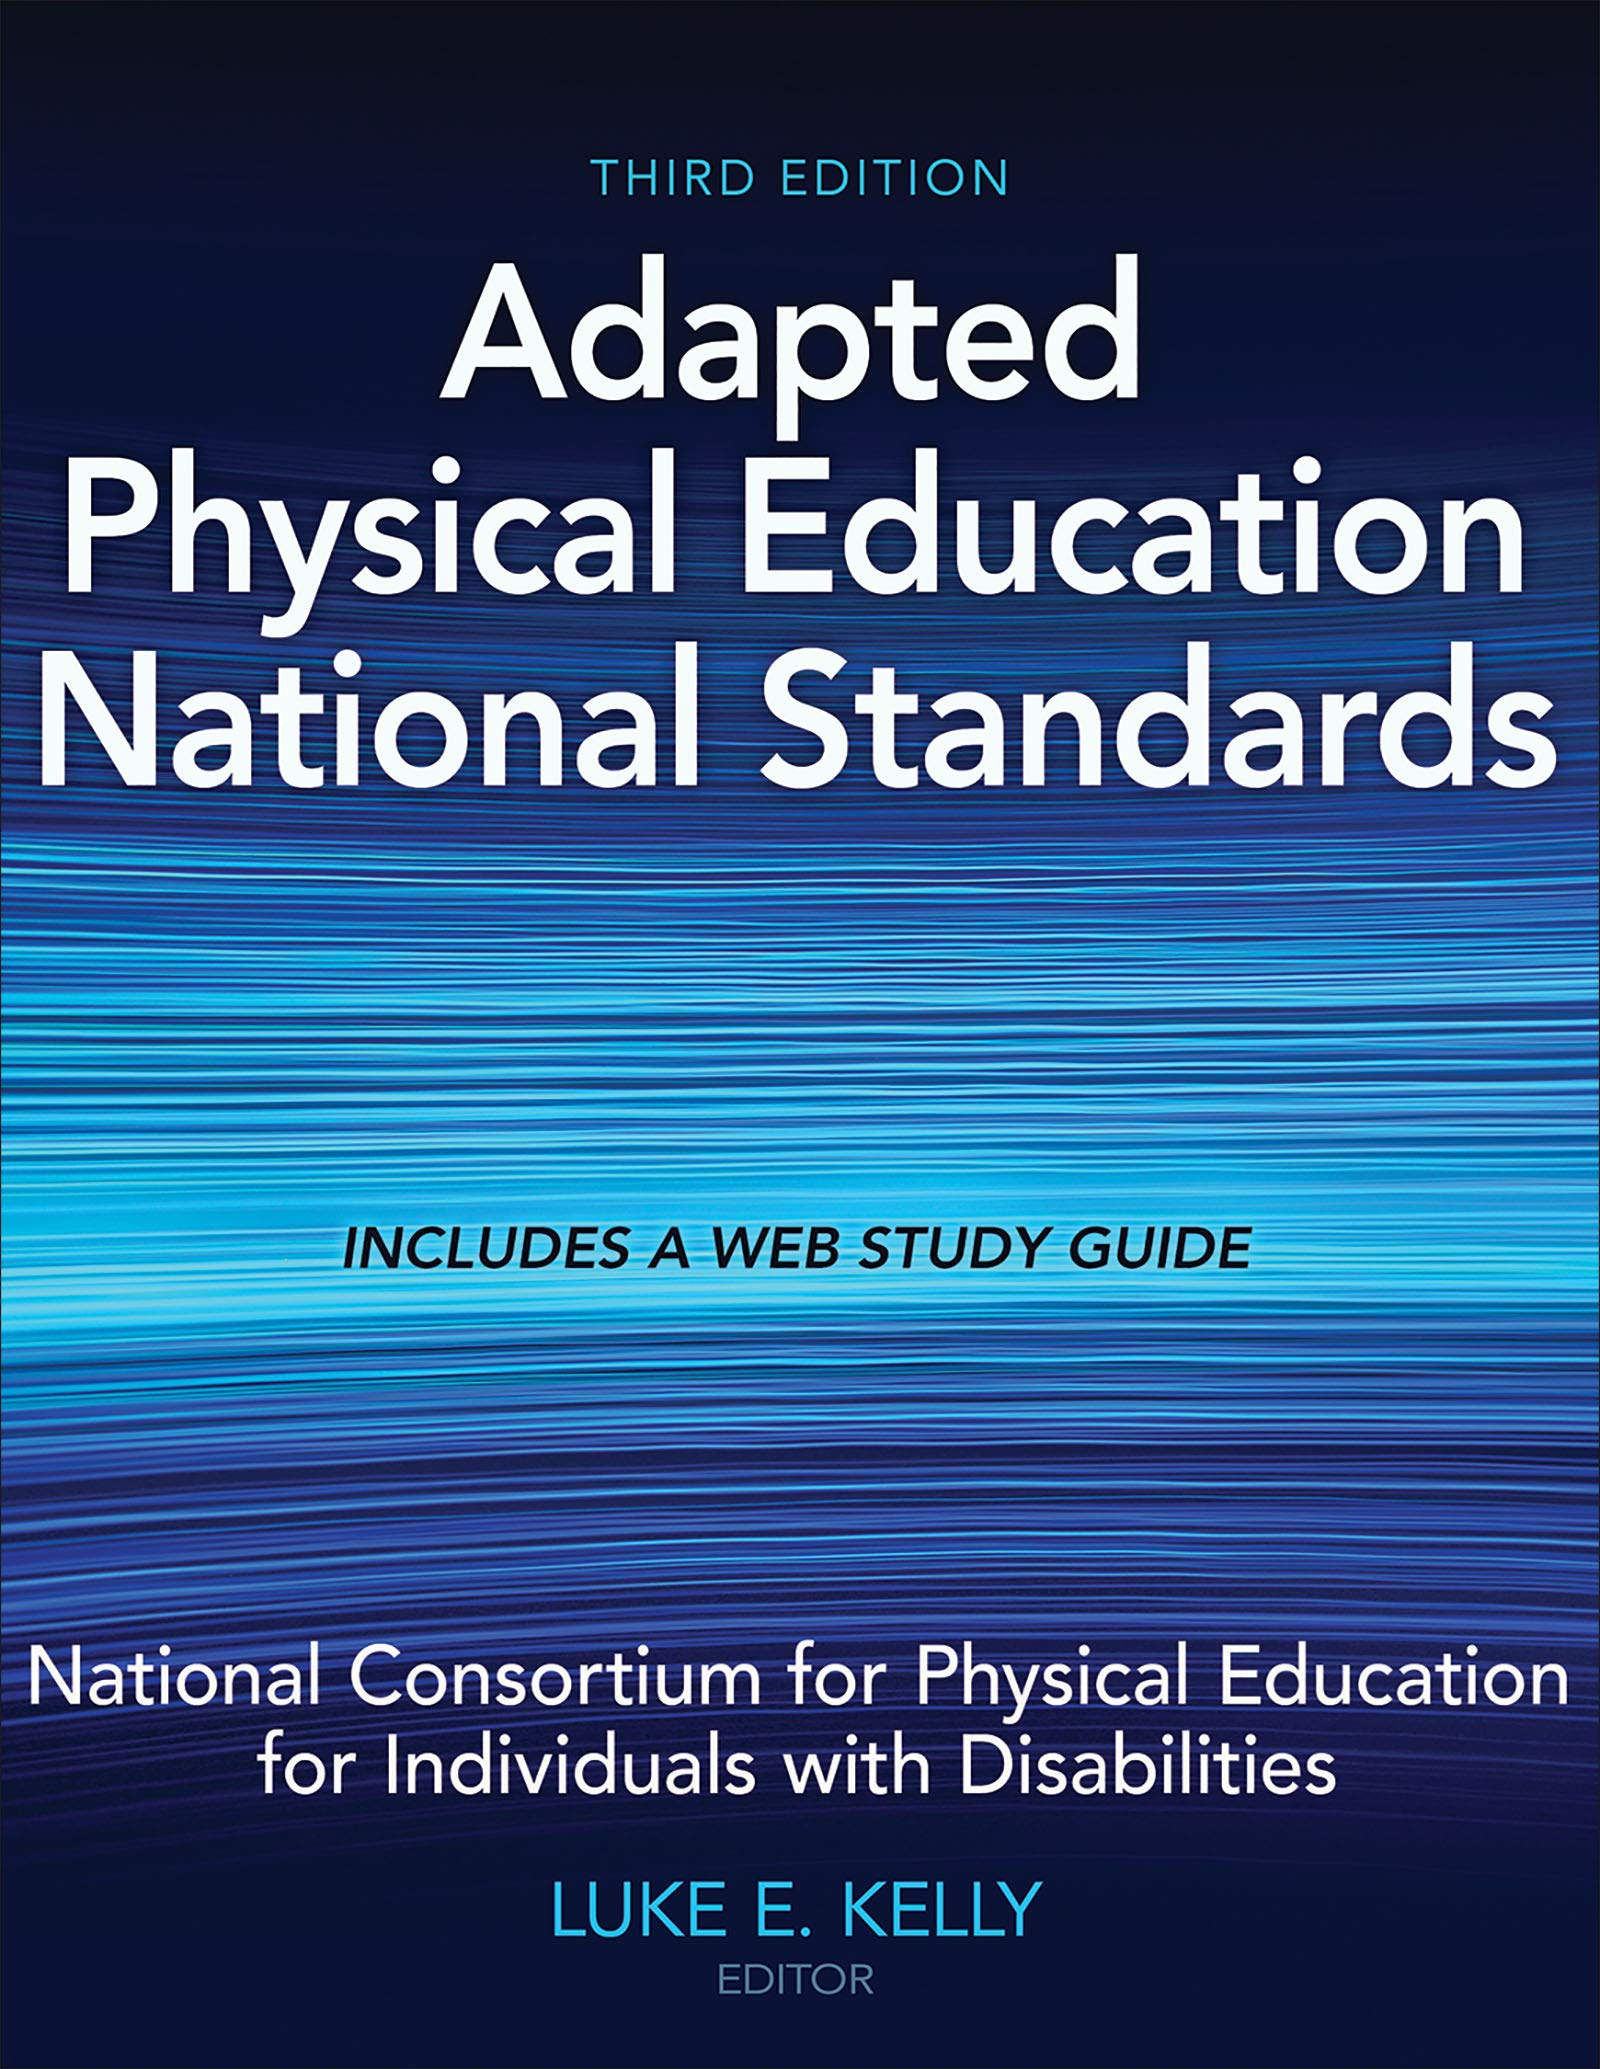 Adapted Physical Education National Standards, Third Edition